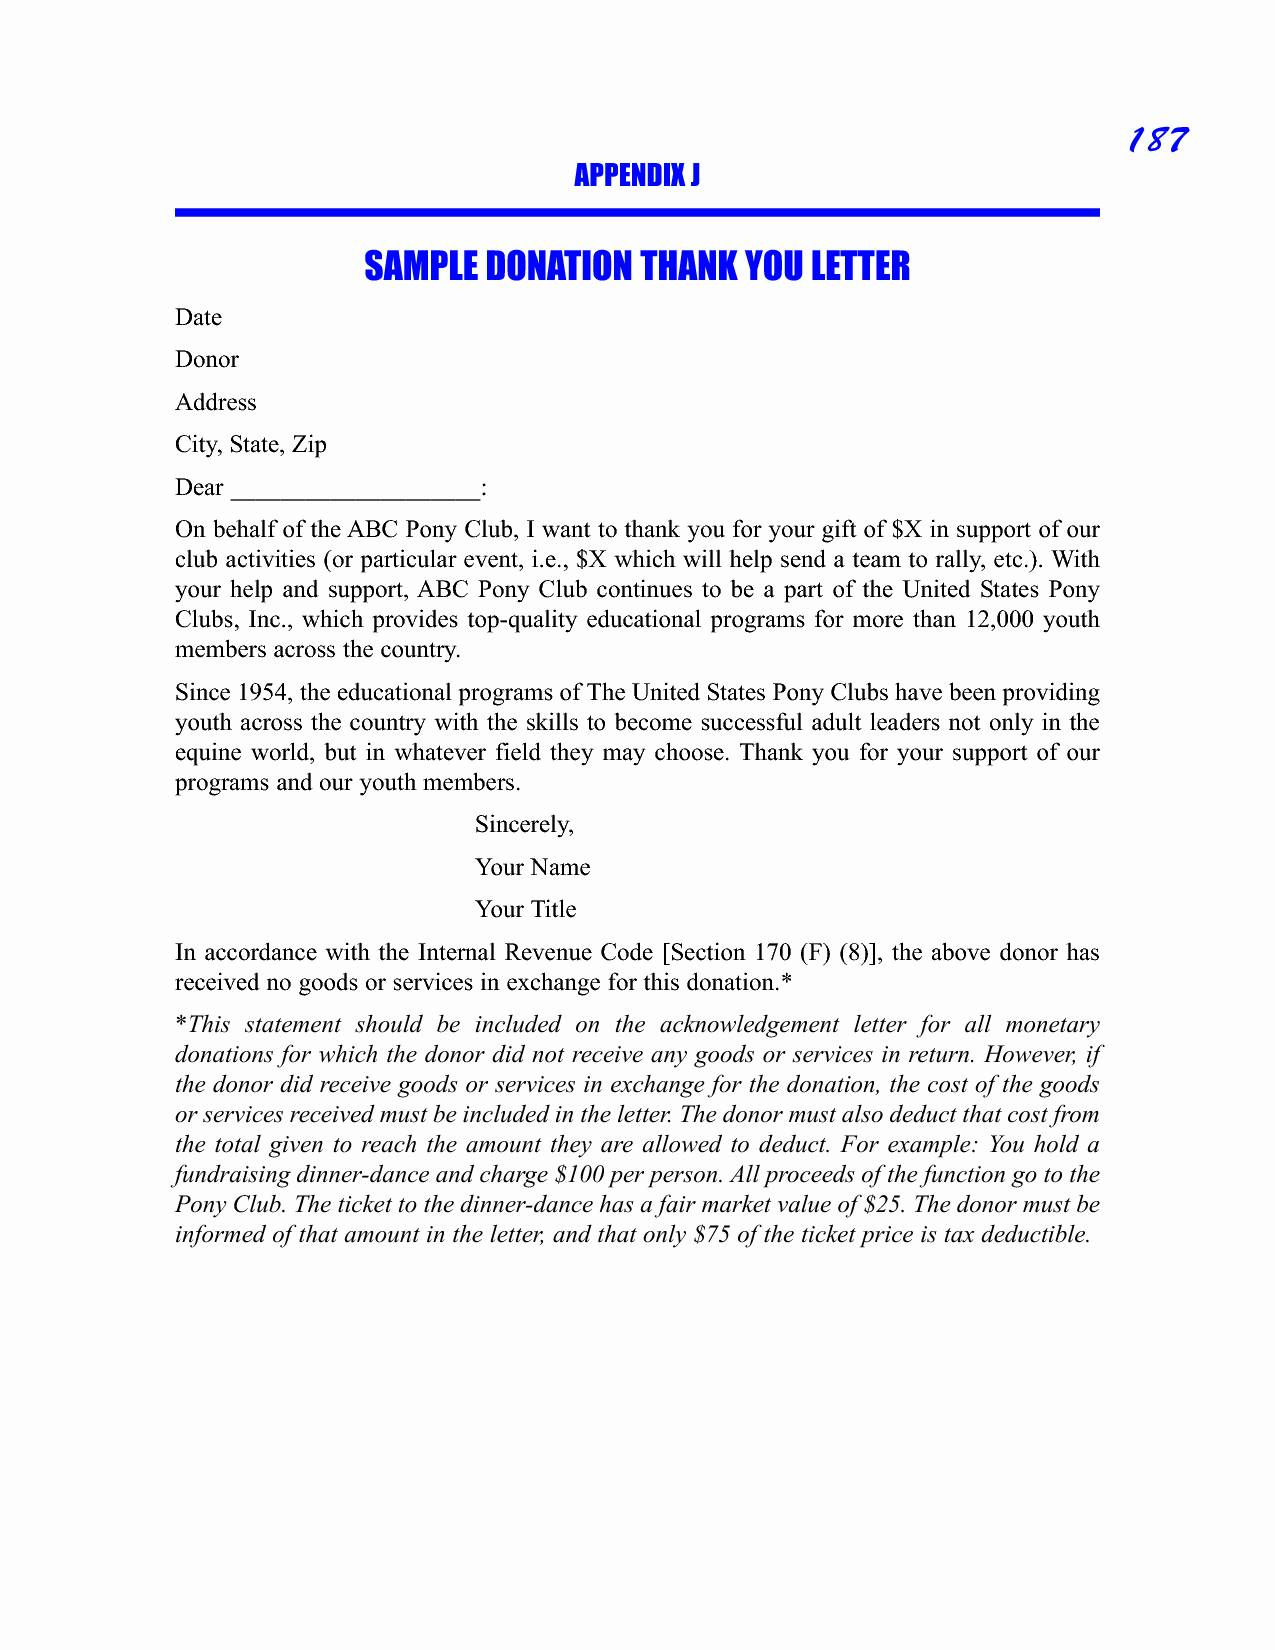 Donor Thank You Letter Template - Scholarship Guidelines Template Fresh Donation Thank You Letters